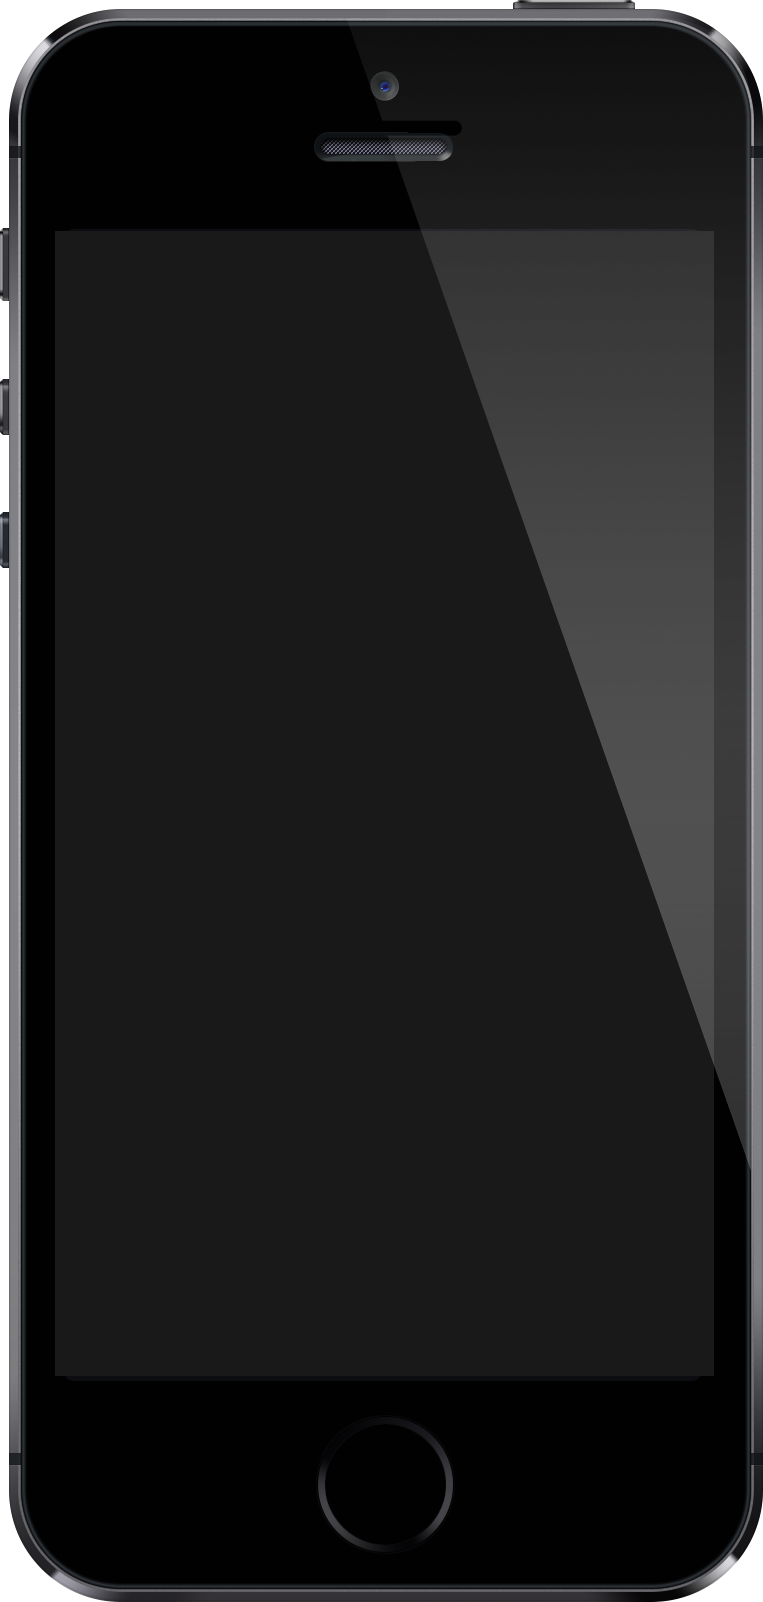 File:iPhone 5s Black.png.